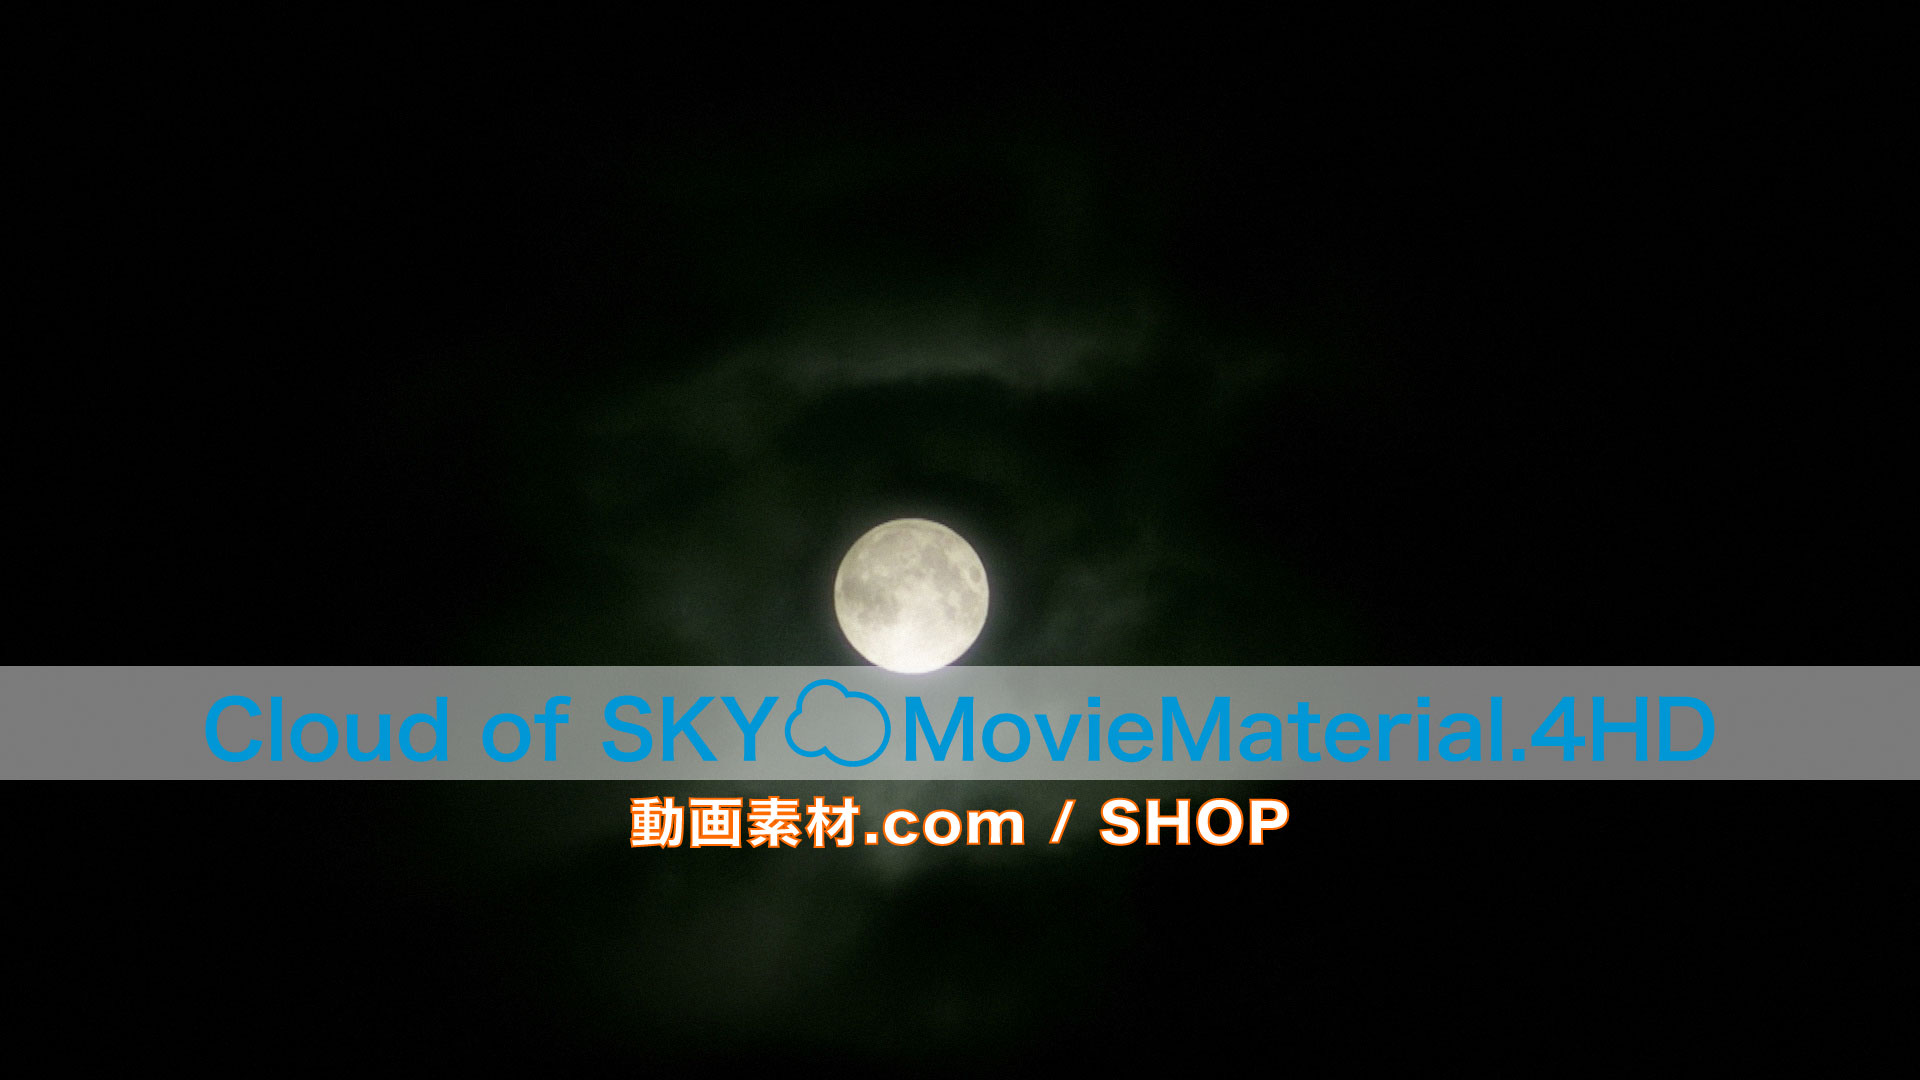 【Cloud of SKY MovieMaterial.4HD】空と雲(月)のフルハイビジョン1920×1080p動画素材集 image5